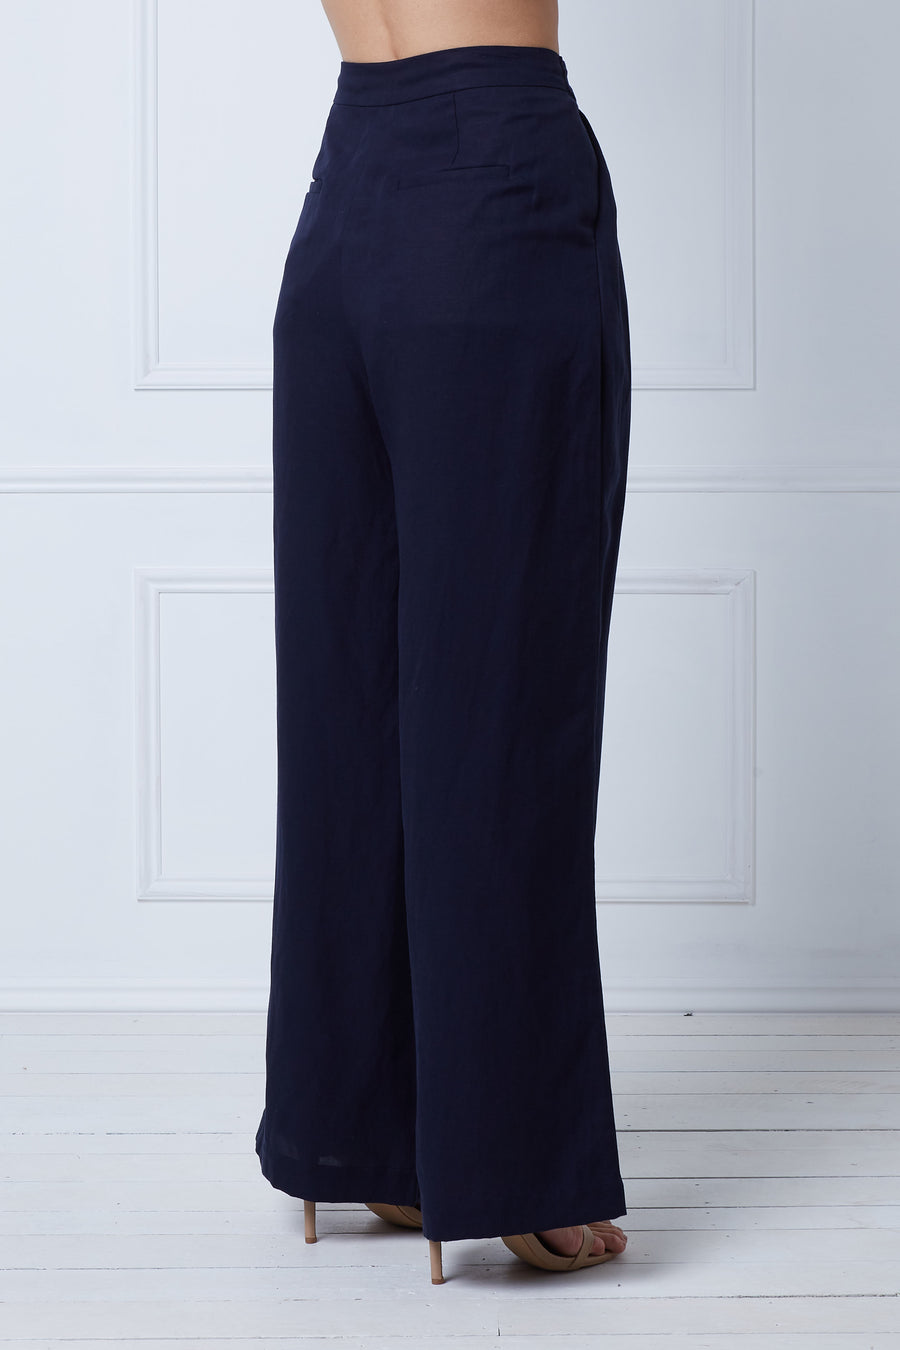 Tiger Lily Gather Pant (Navy)